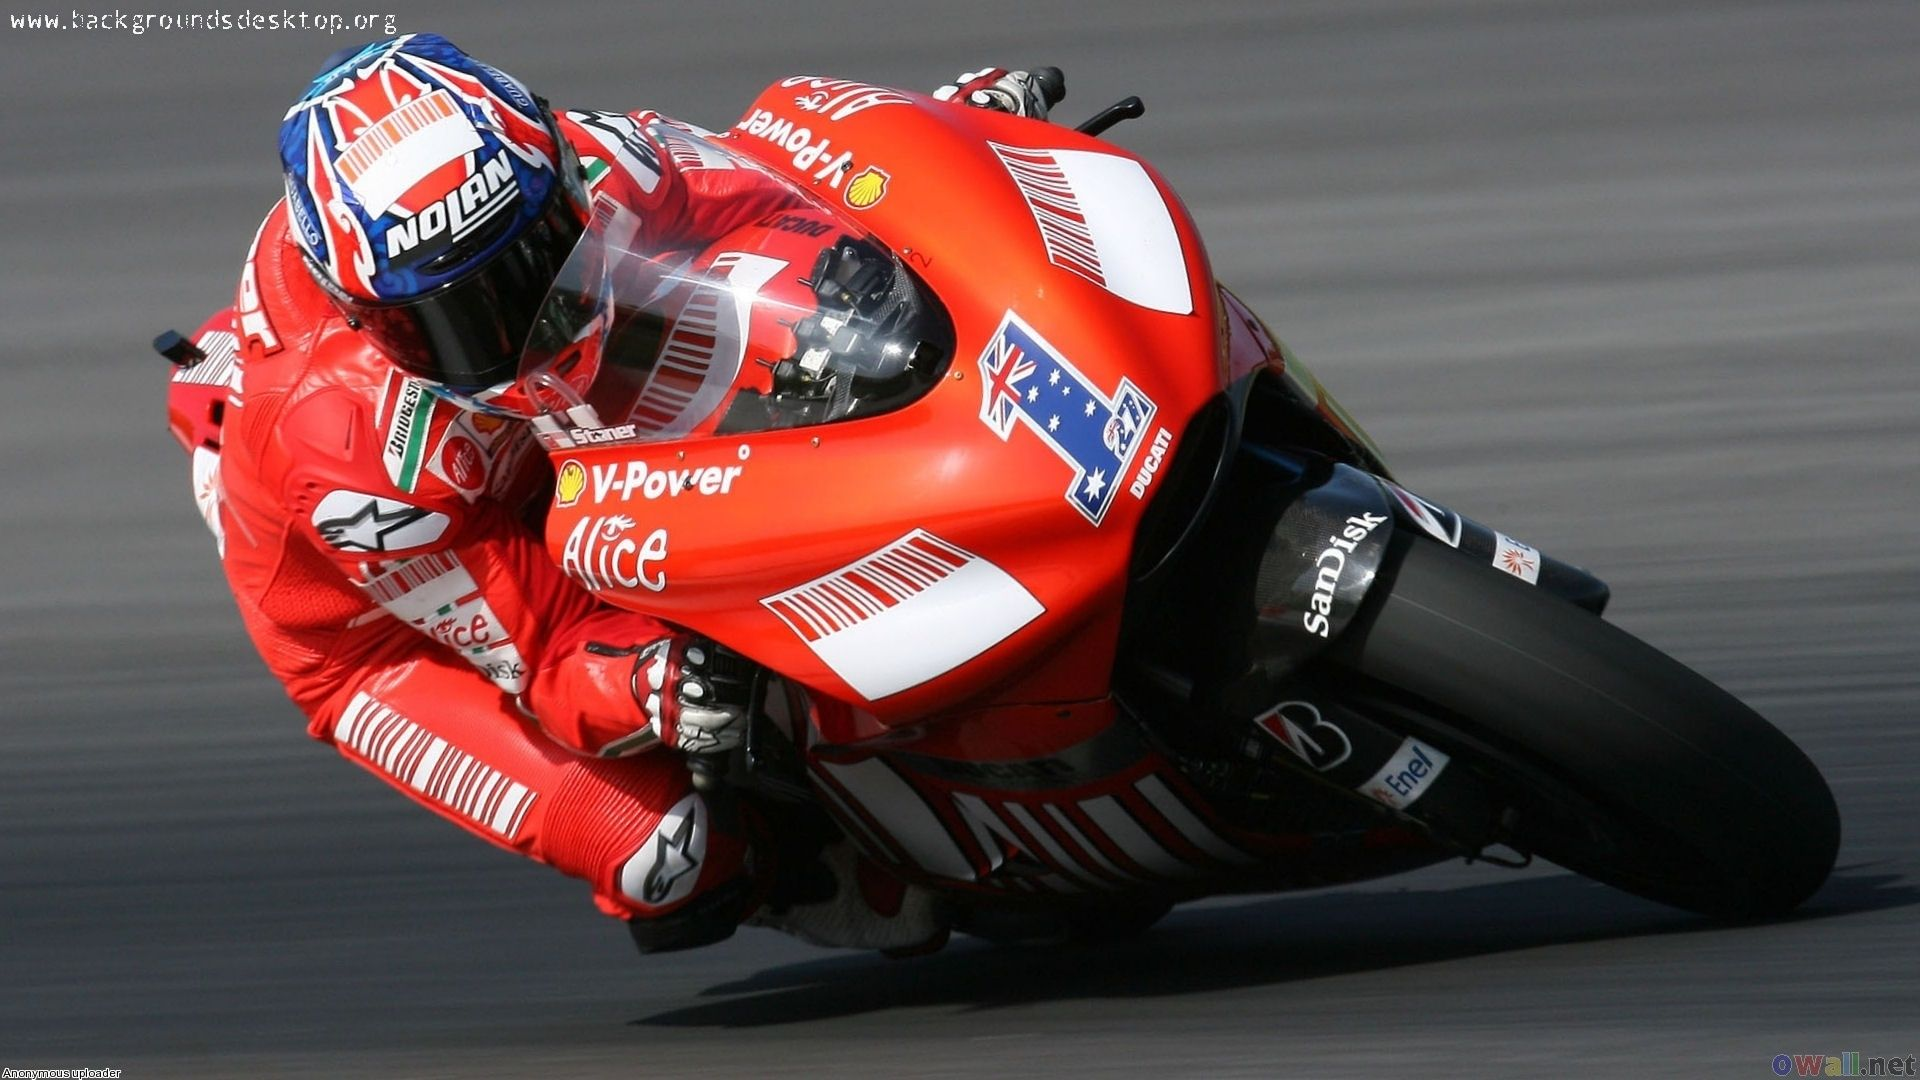 World Wallpaper Ducati Champion Motogp Casey Stoner Wallpapers